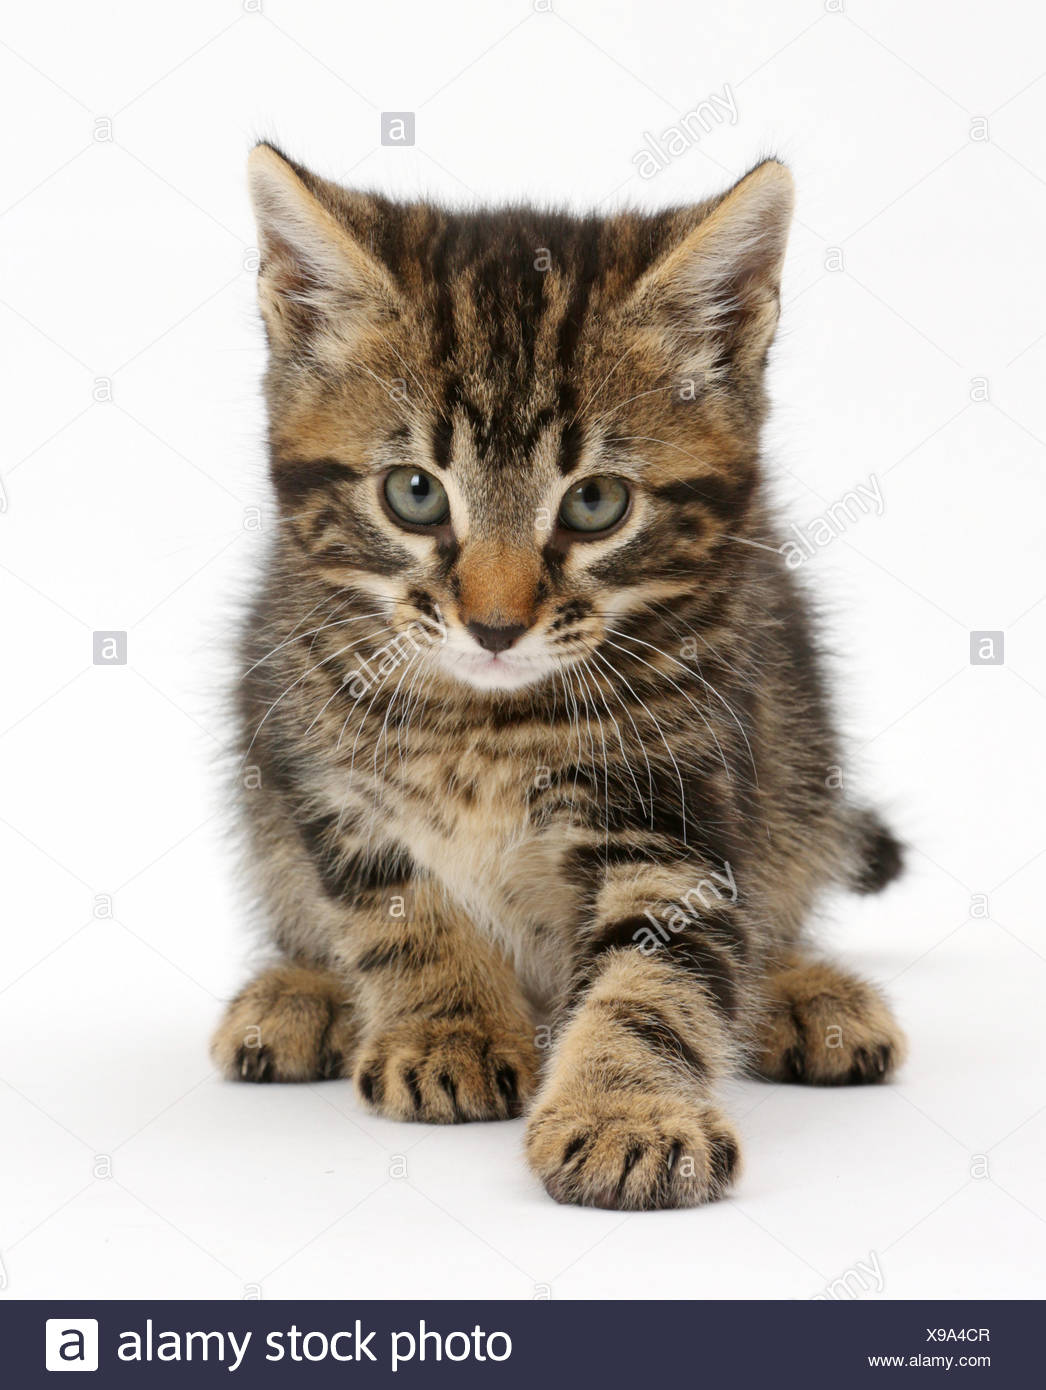 Tabby kitten, Smudge, age 7 weeks. - Stock Image